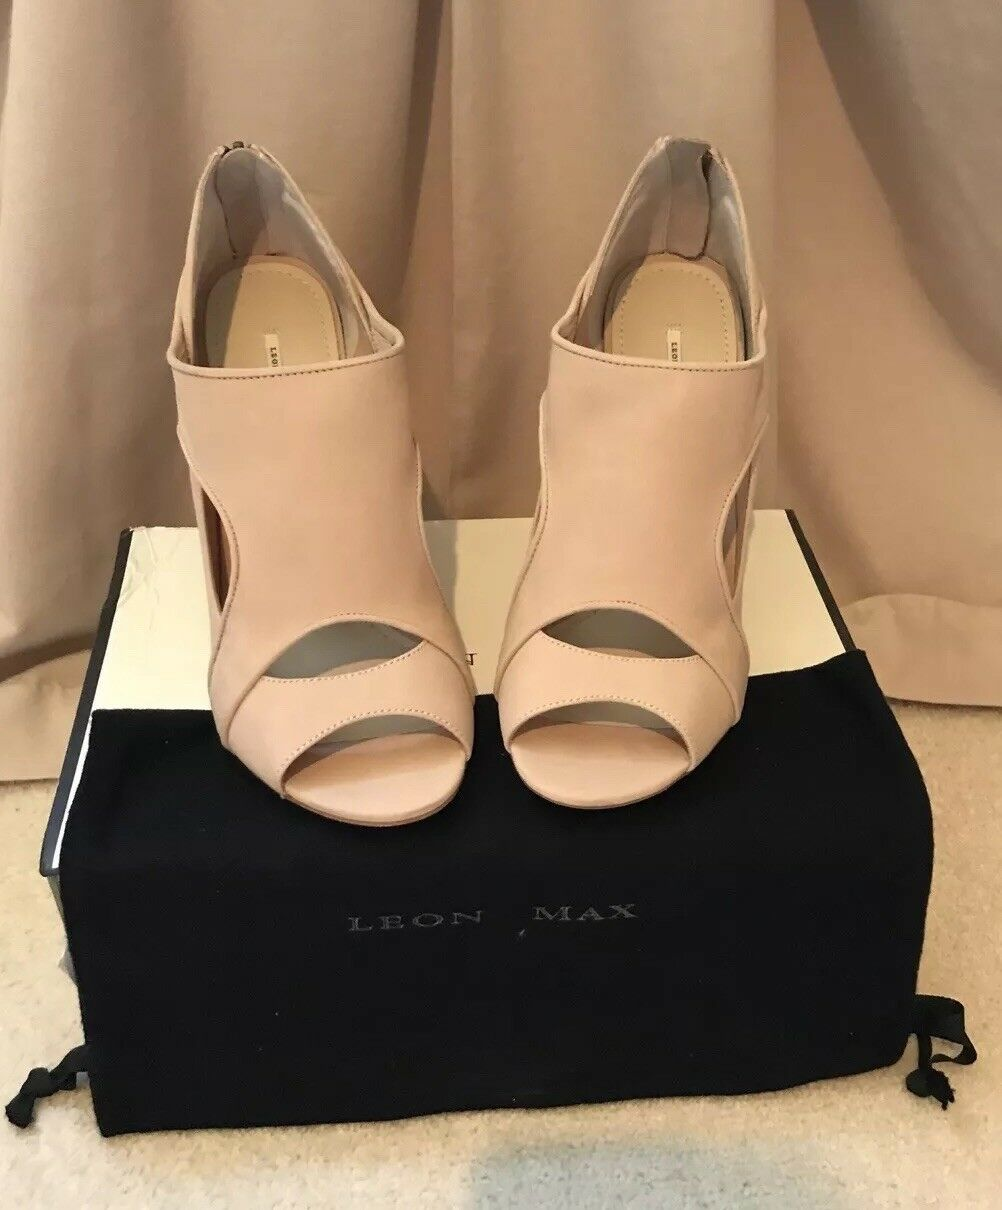 Leon Max Leather Ankle Wrap Smitten Heels Brand New In In In Box Rrp Größe 7.5 fcaf9c